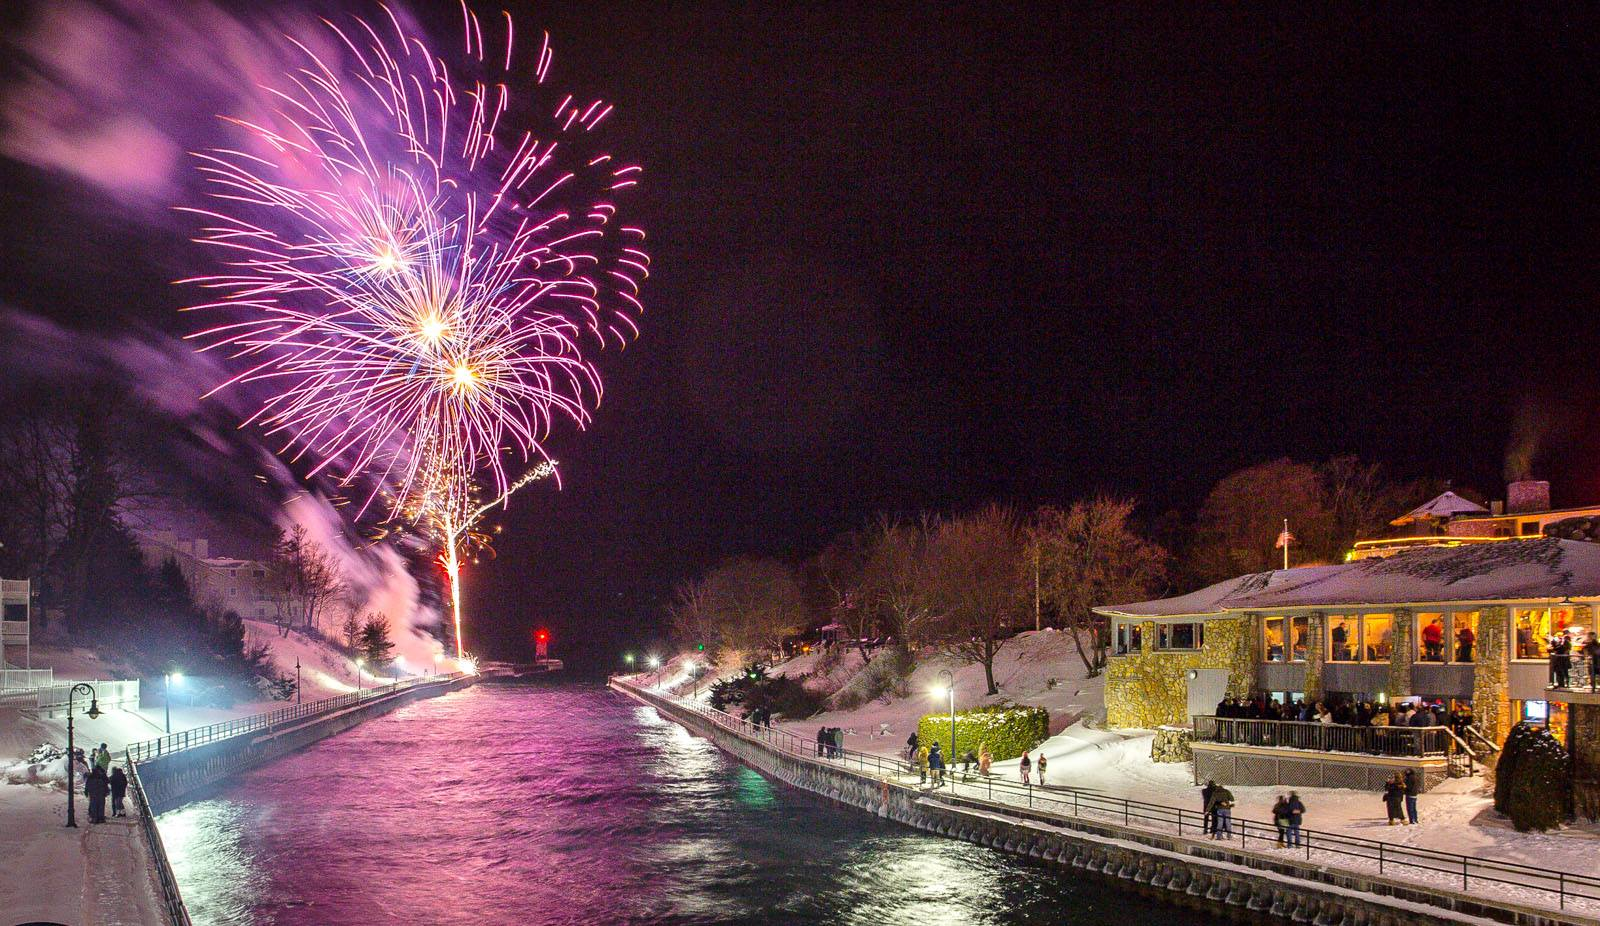 NYE Bridge Drop 2018 - In Charlevoix for New Year's Eve? Join us for the 2018 NYE Bridge Drop Celebration! Click below for Event Details!